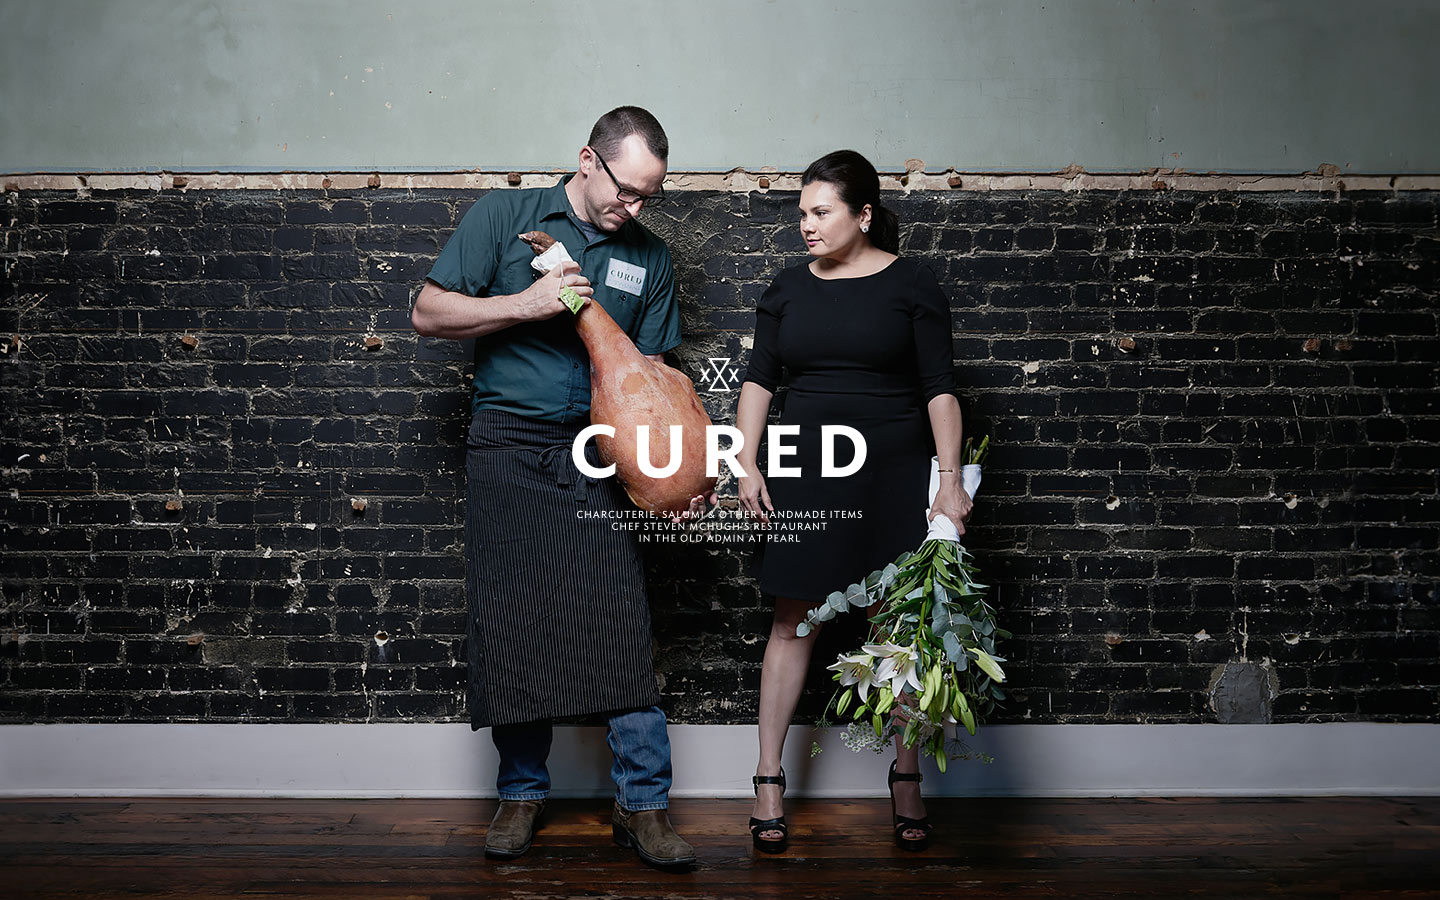 Brand photography of ChefSteven McHugh and his wife.